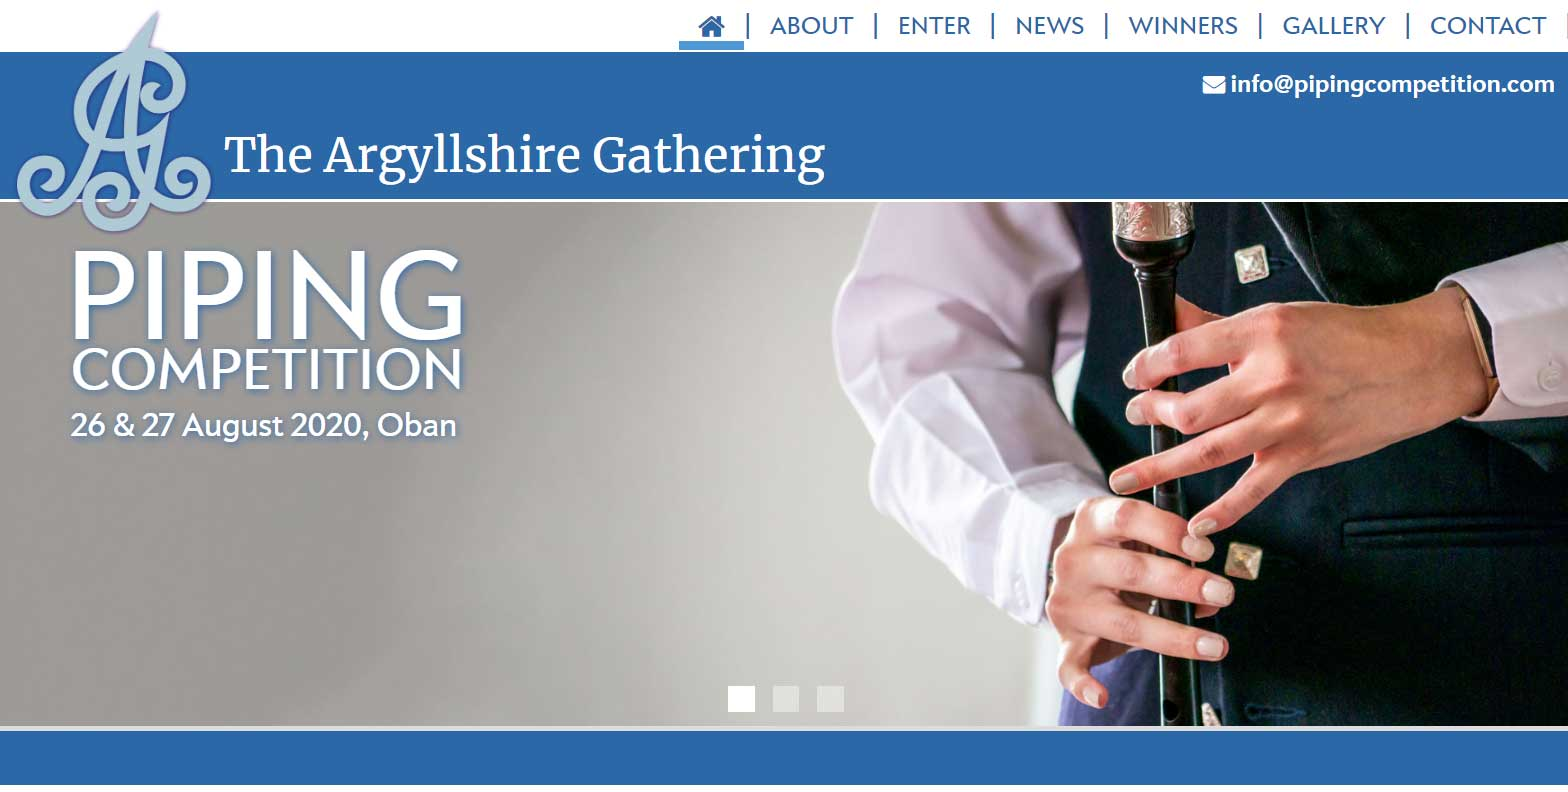 The Argyllshire Gathering Piping Competition website